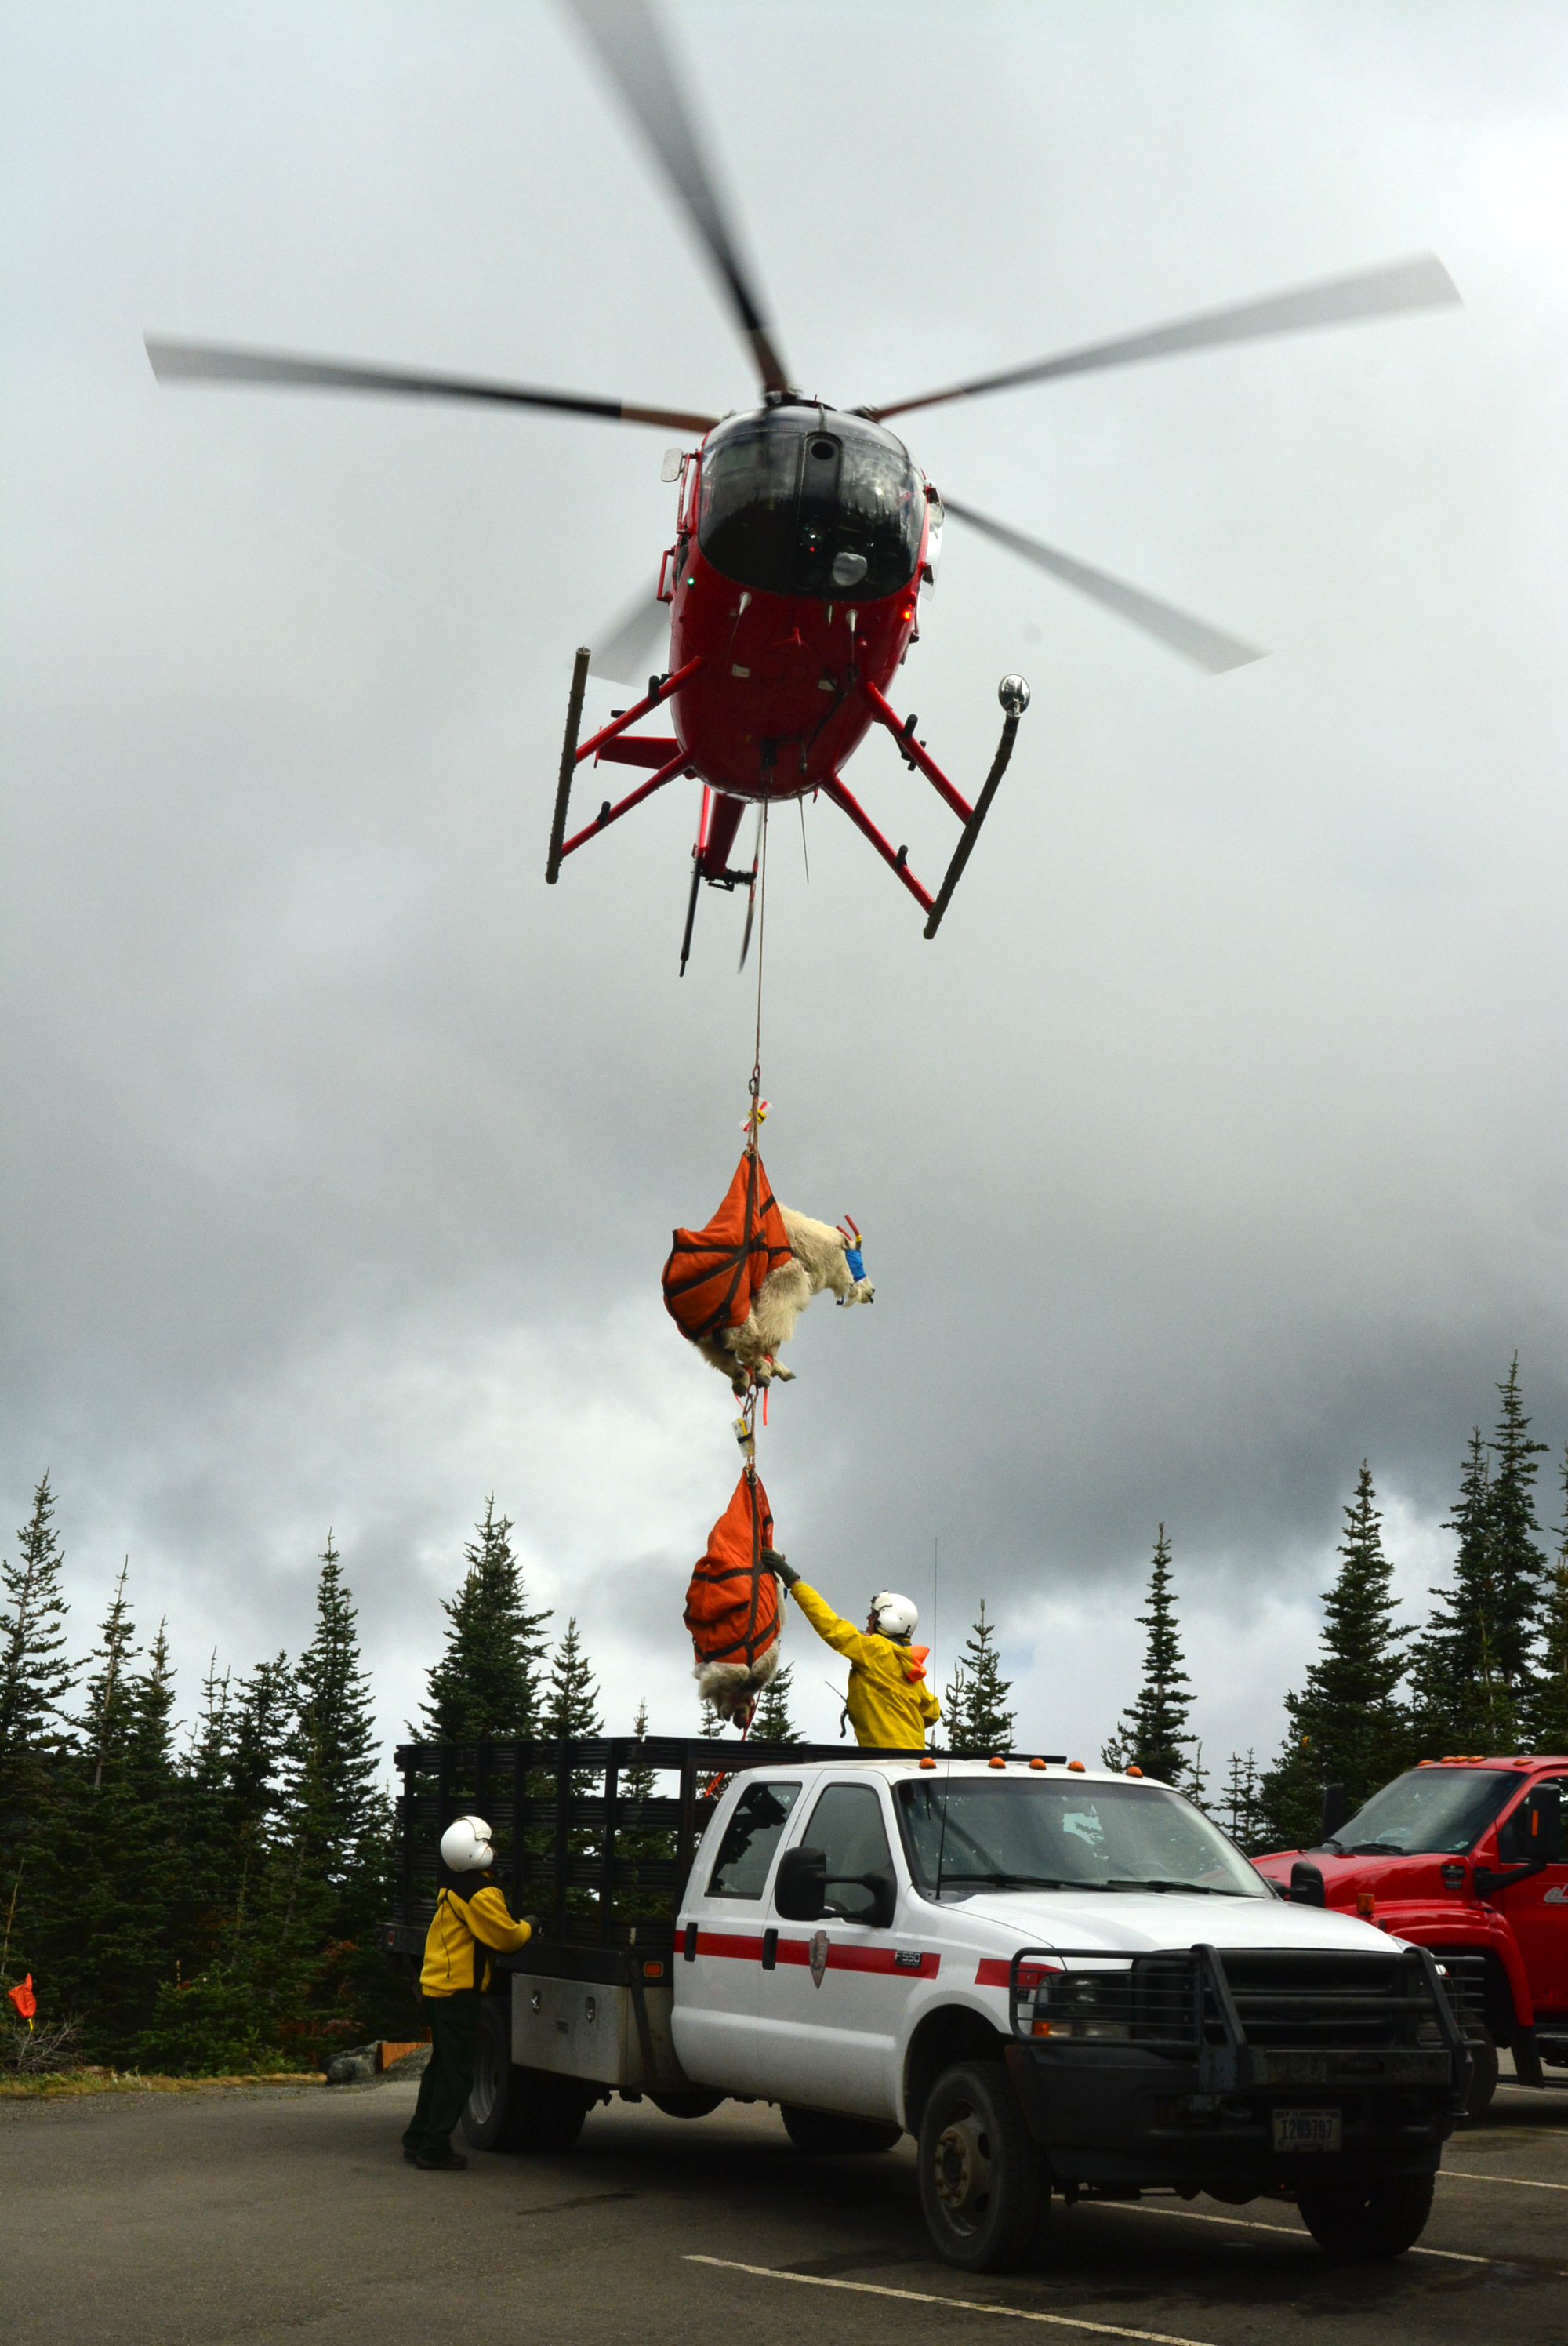 Helicopter setting mountain goats in slings into the back of a truck.